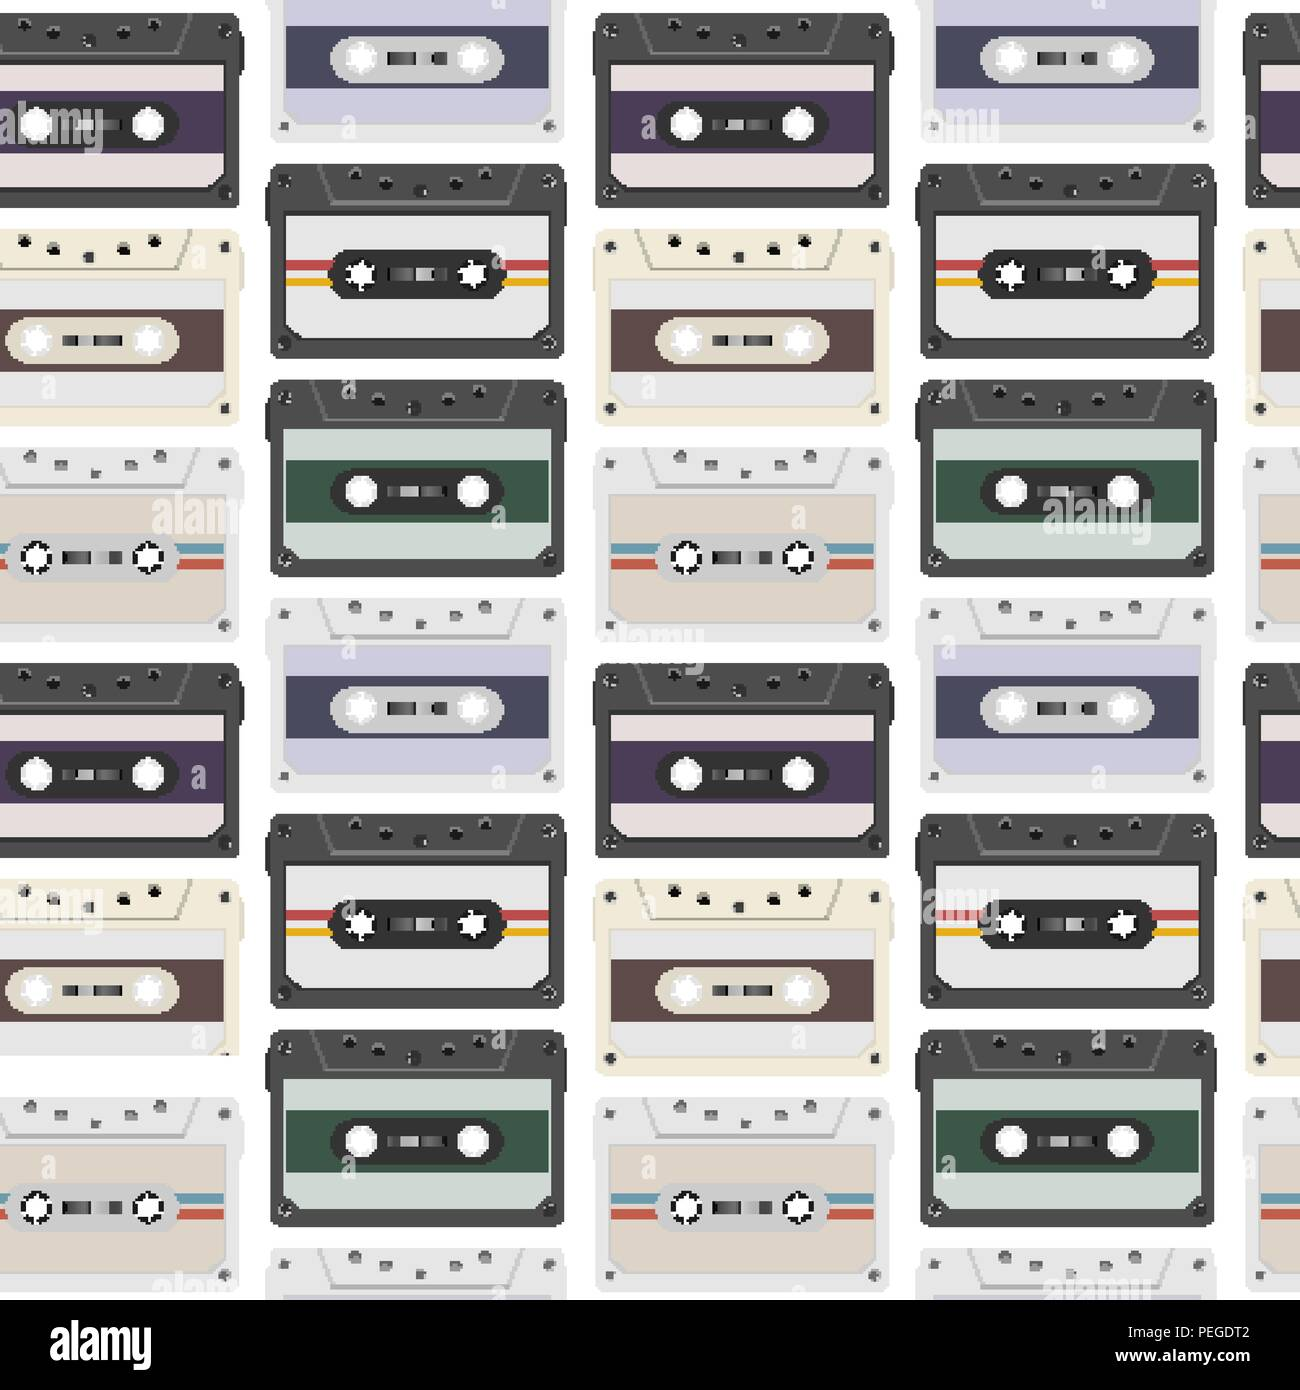 Vintage seamless pattern with analogue music cassettes. 80s Loopable background with magnetic audio tapes - Stock Image